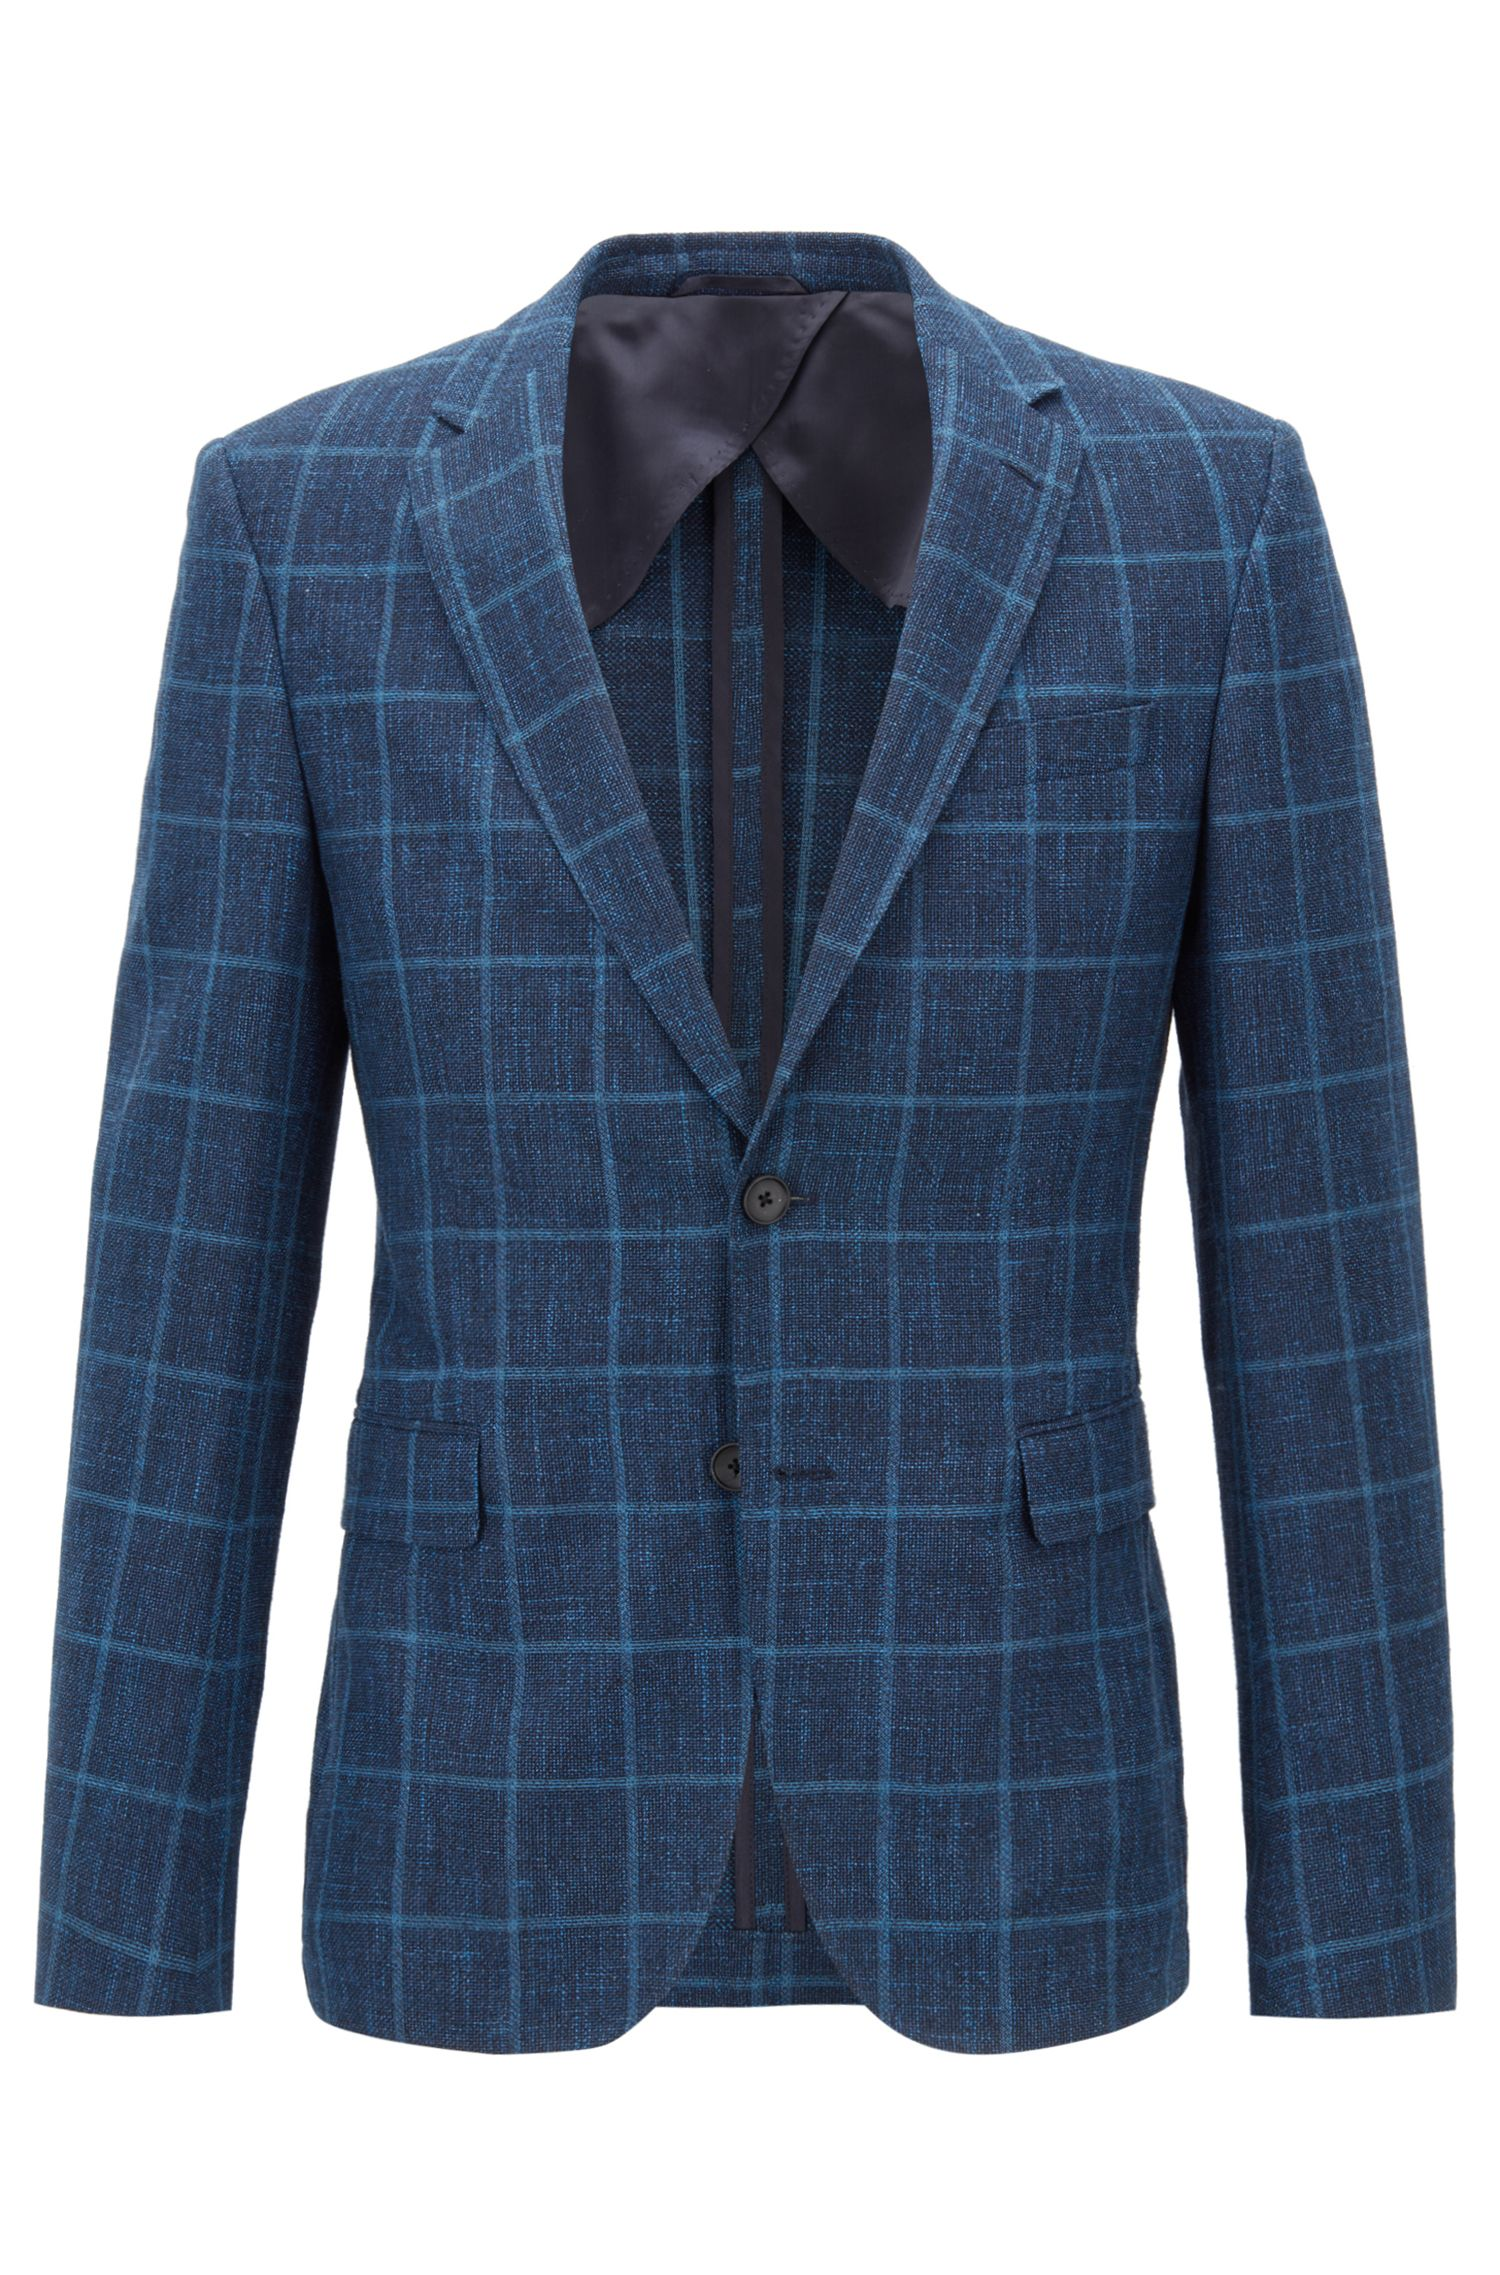 Blazer slim fit in misto lana vergine a quadri